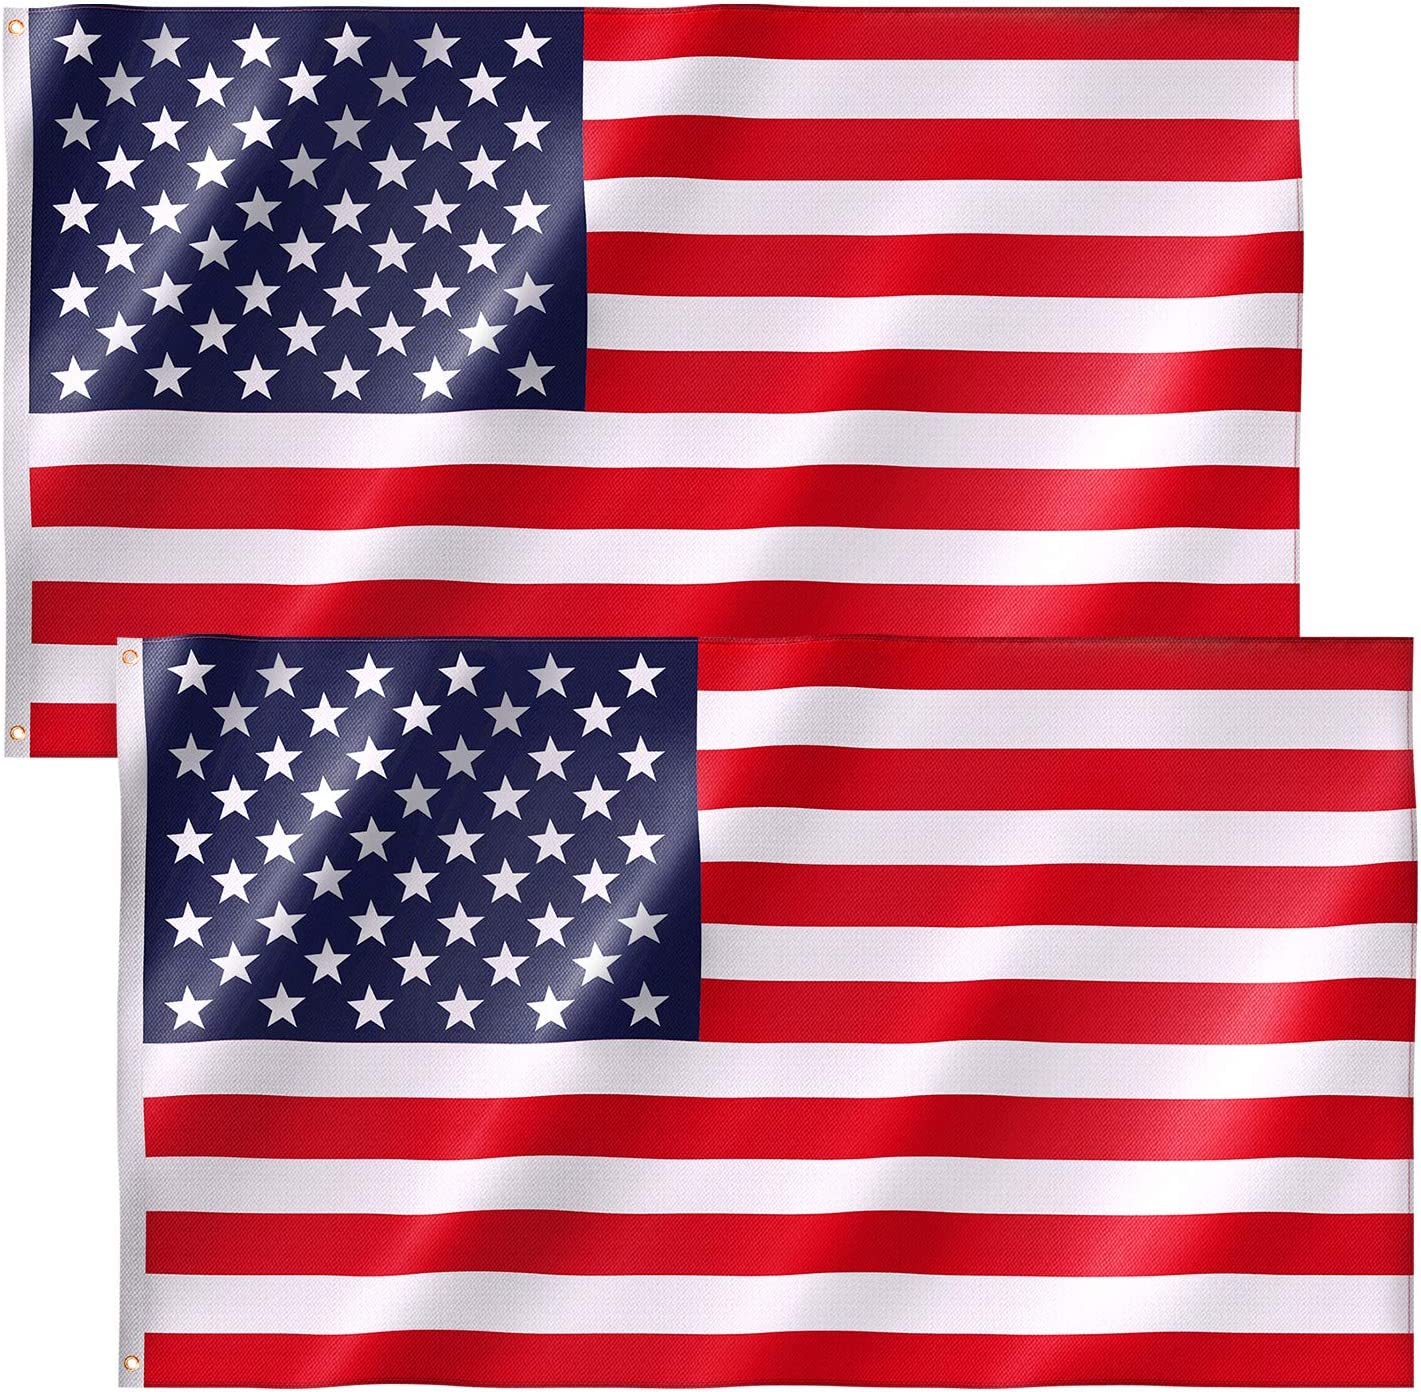 Free Walker American Flag 3x5 FT 2PACKS, Premium Nylon US Flags with Bright Vibrant Color and Brass Grommets for Indoors and Outdoors, Durable USA Flag for Outside(2xBreeze Style) : Garden & Outdoor